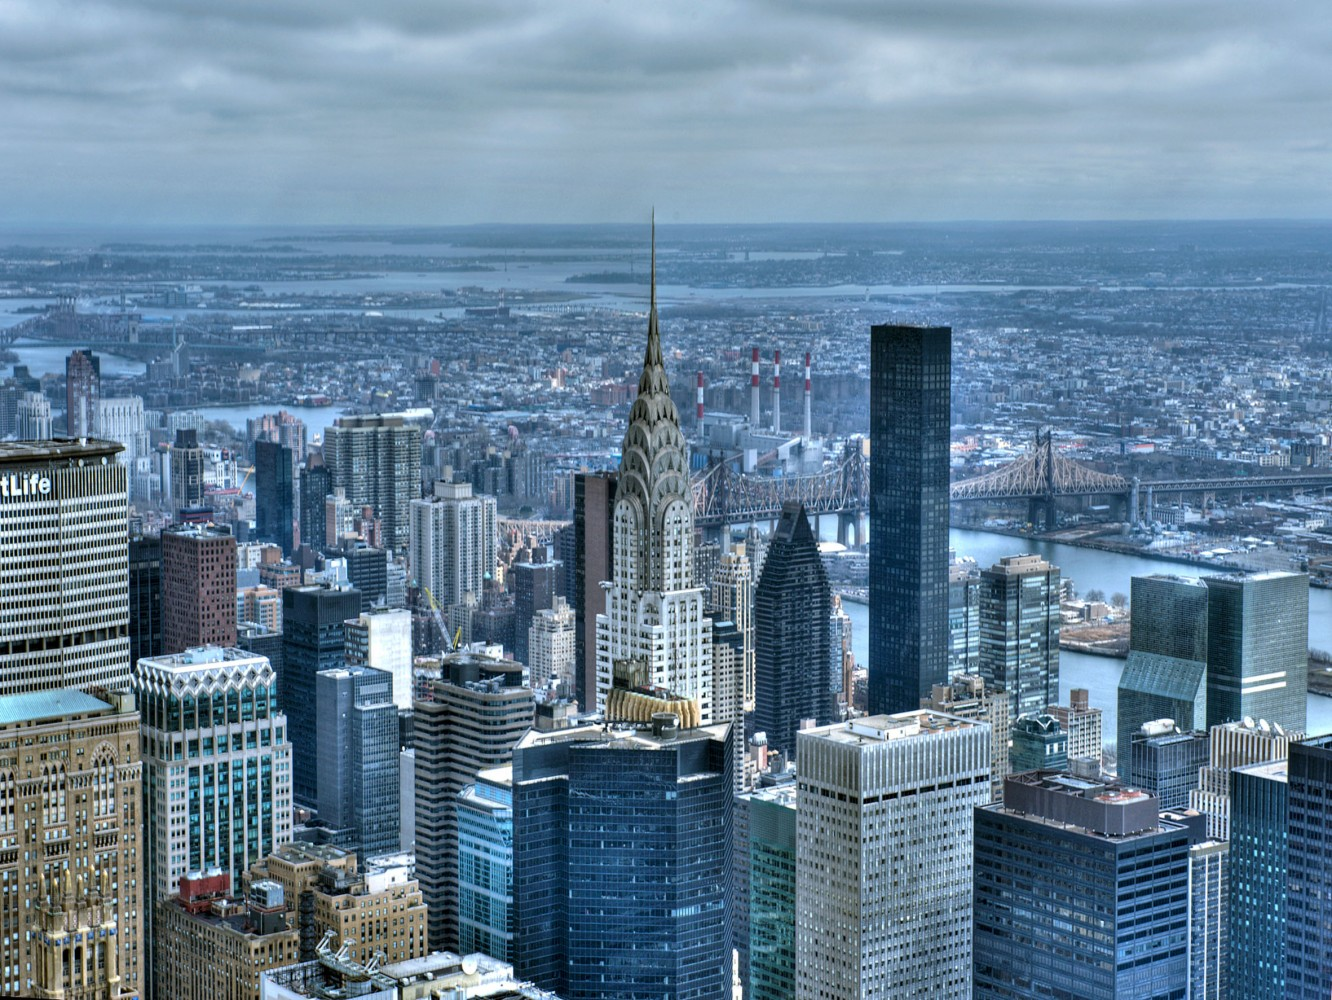 Wall Mural Wallpaper New York Skyline Poster 127 Cm X 180 Cm / 1.39 Yd X  1.97 Yd Part 33